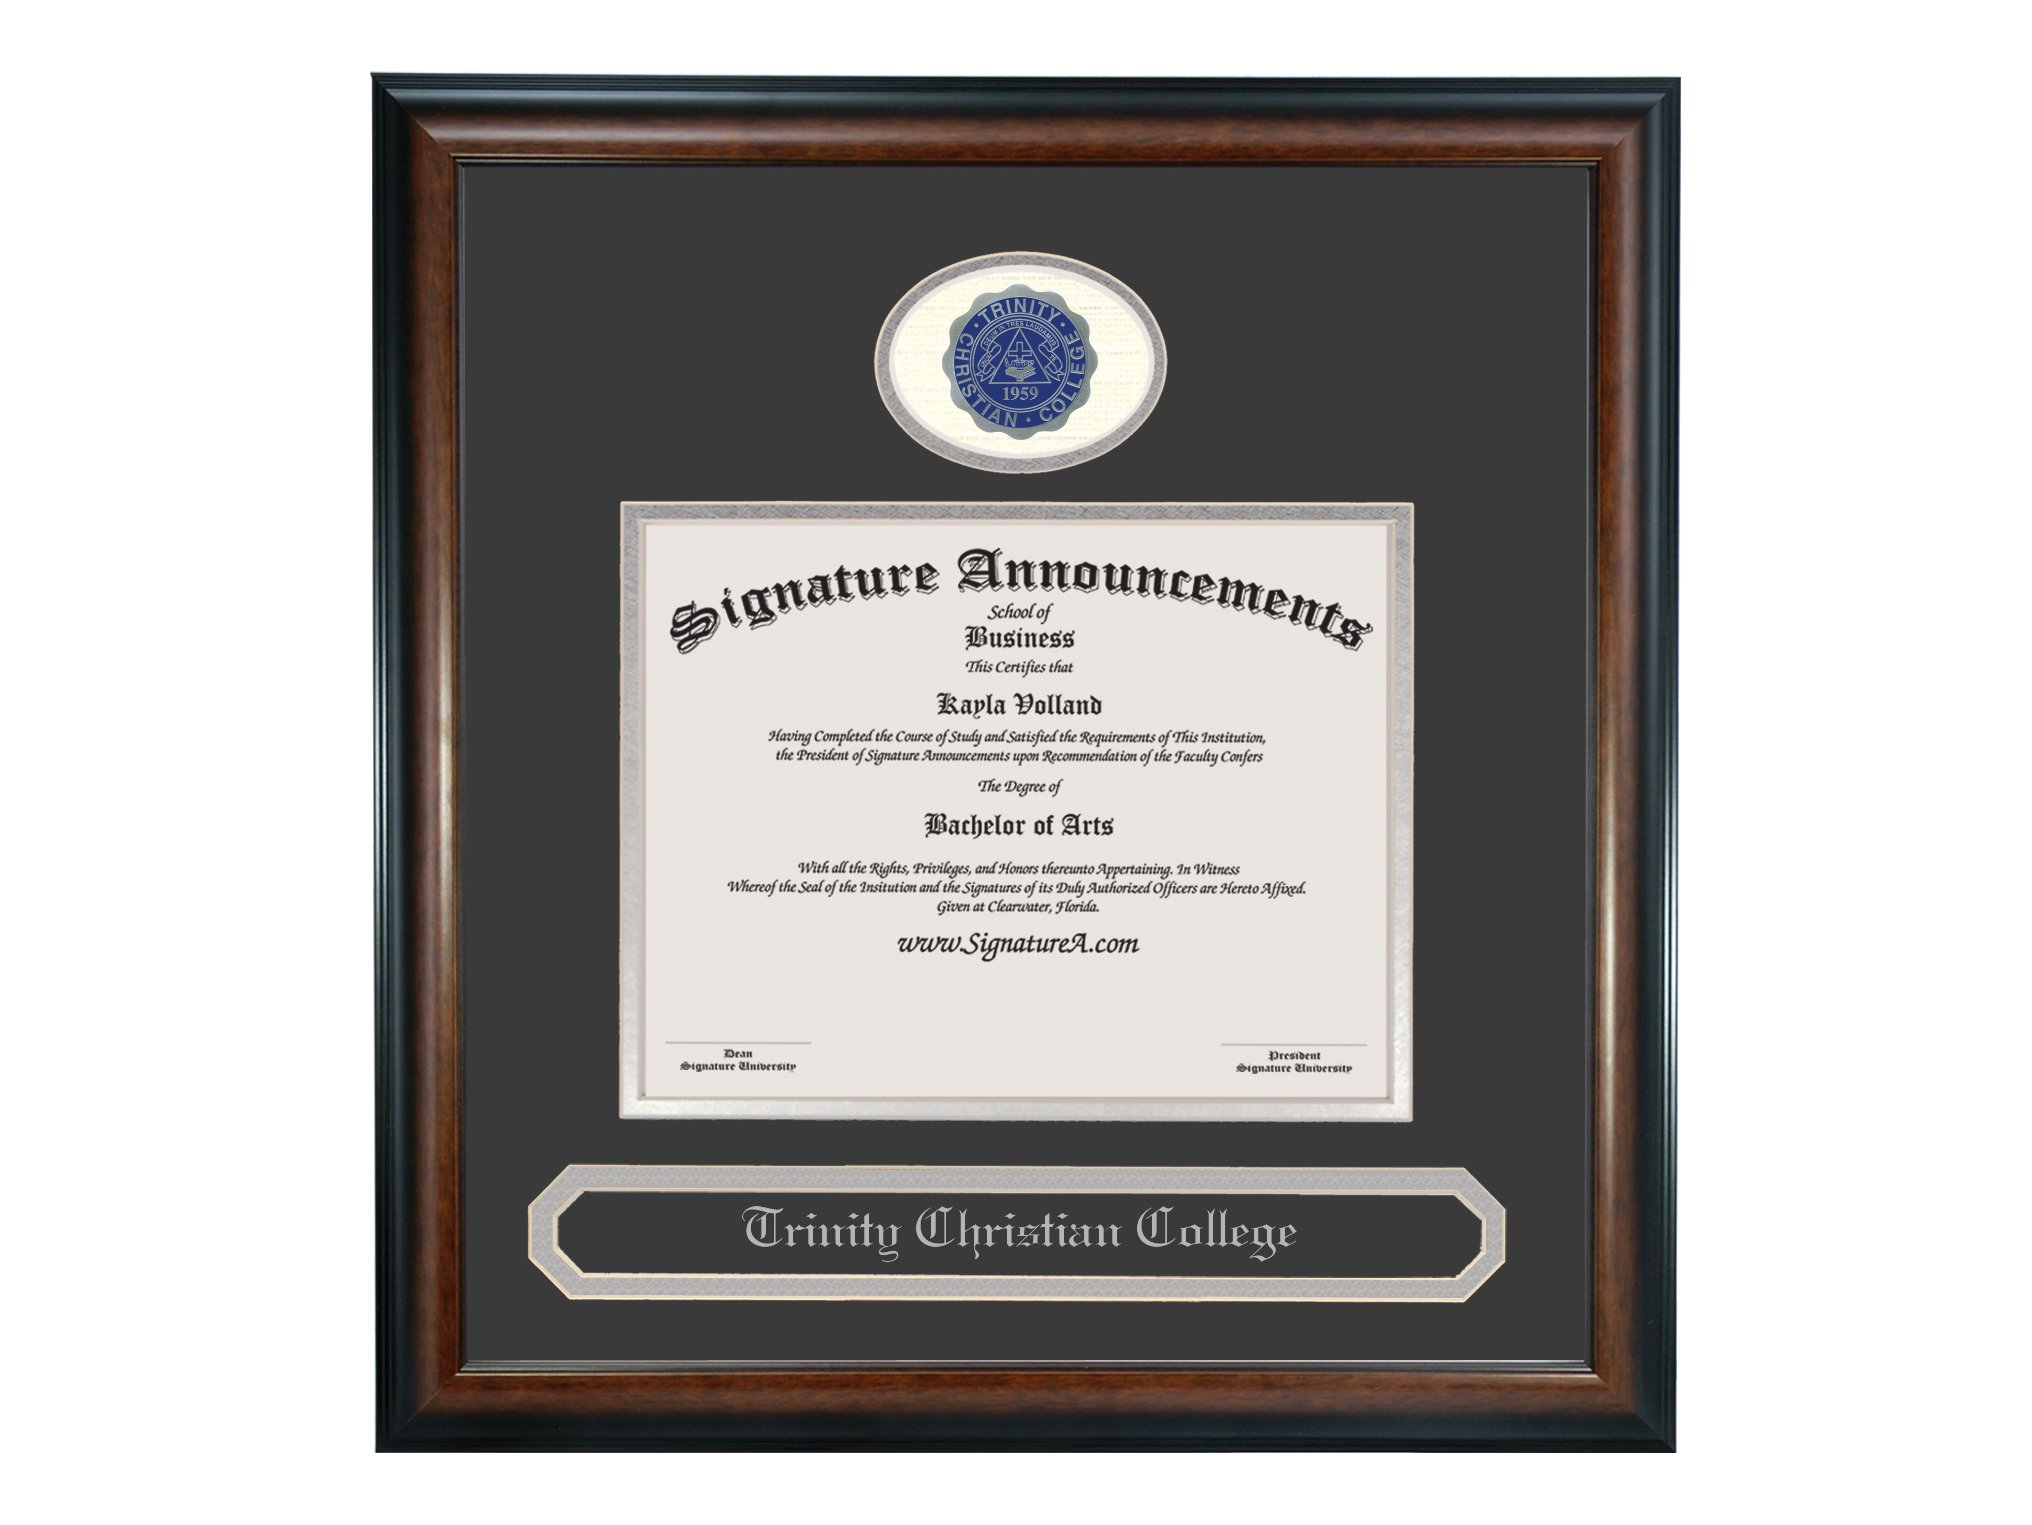 Signature Announcements Trinity Christian College Undergraduate Sculpted Foil Seal & Name Graduation Diploma Frame, 16'' x 16'', Matte Mahogany